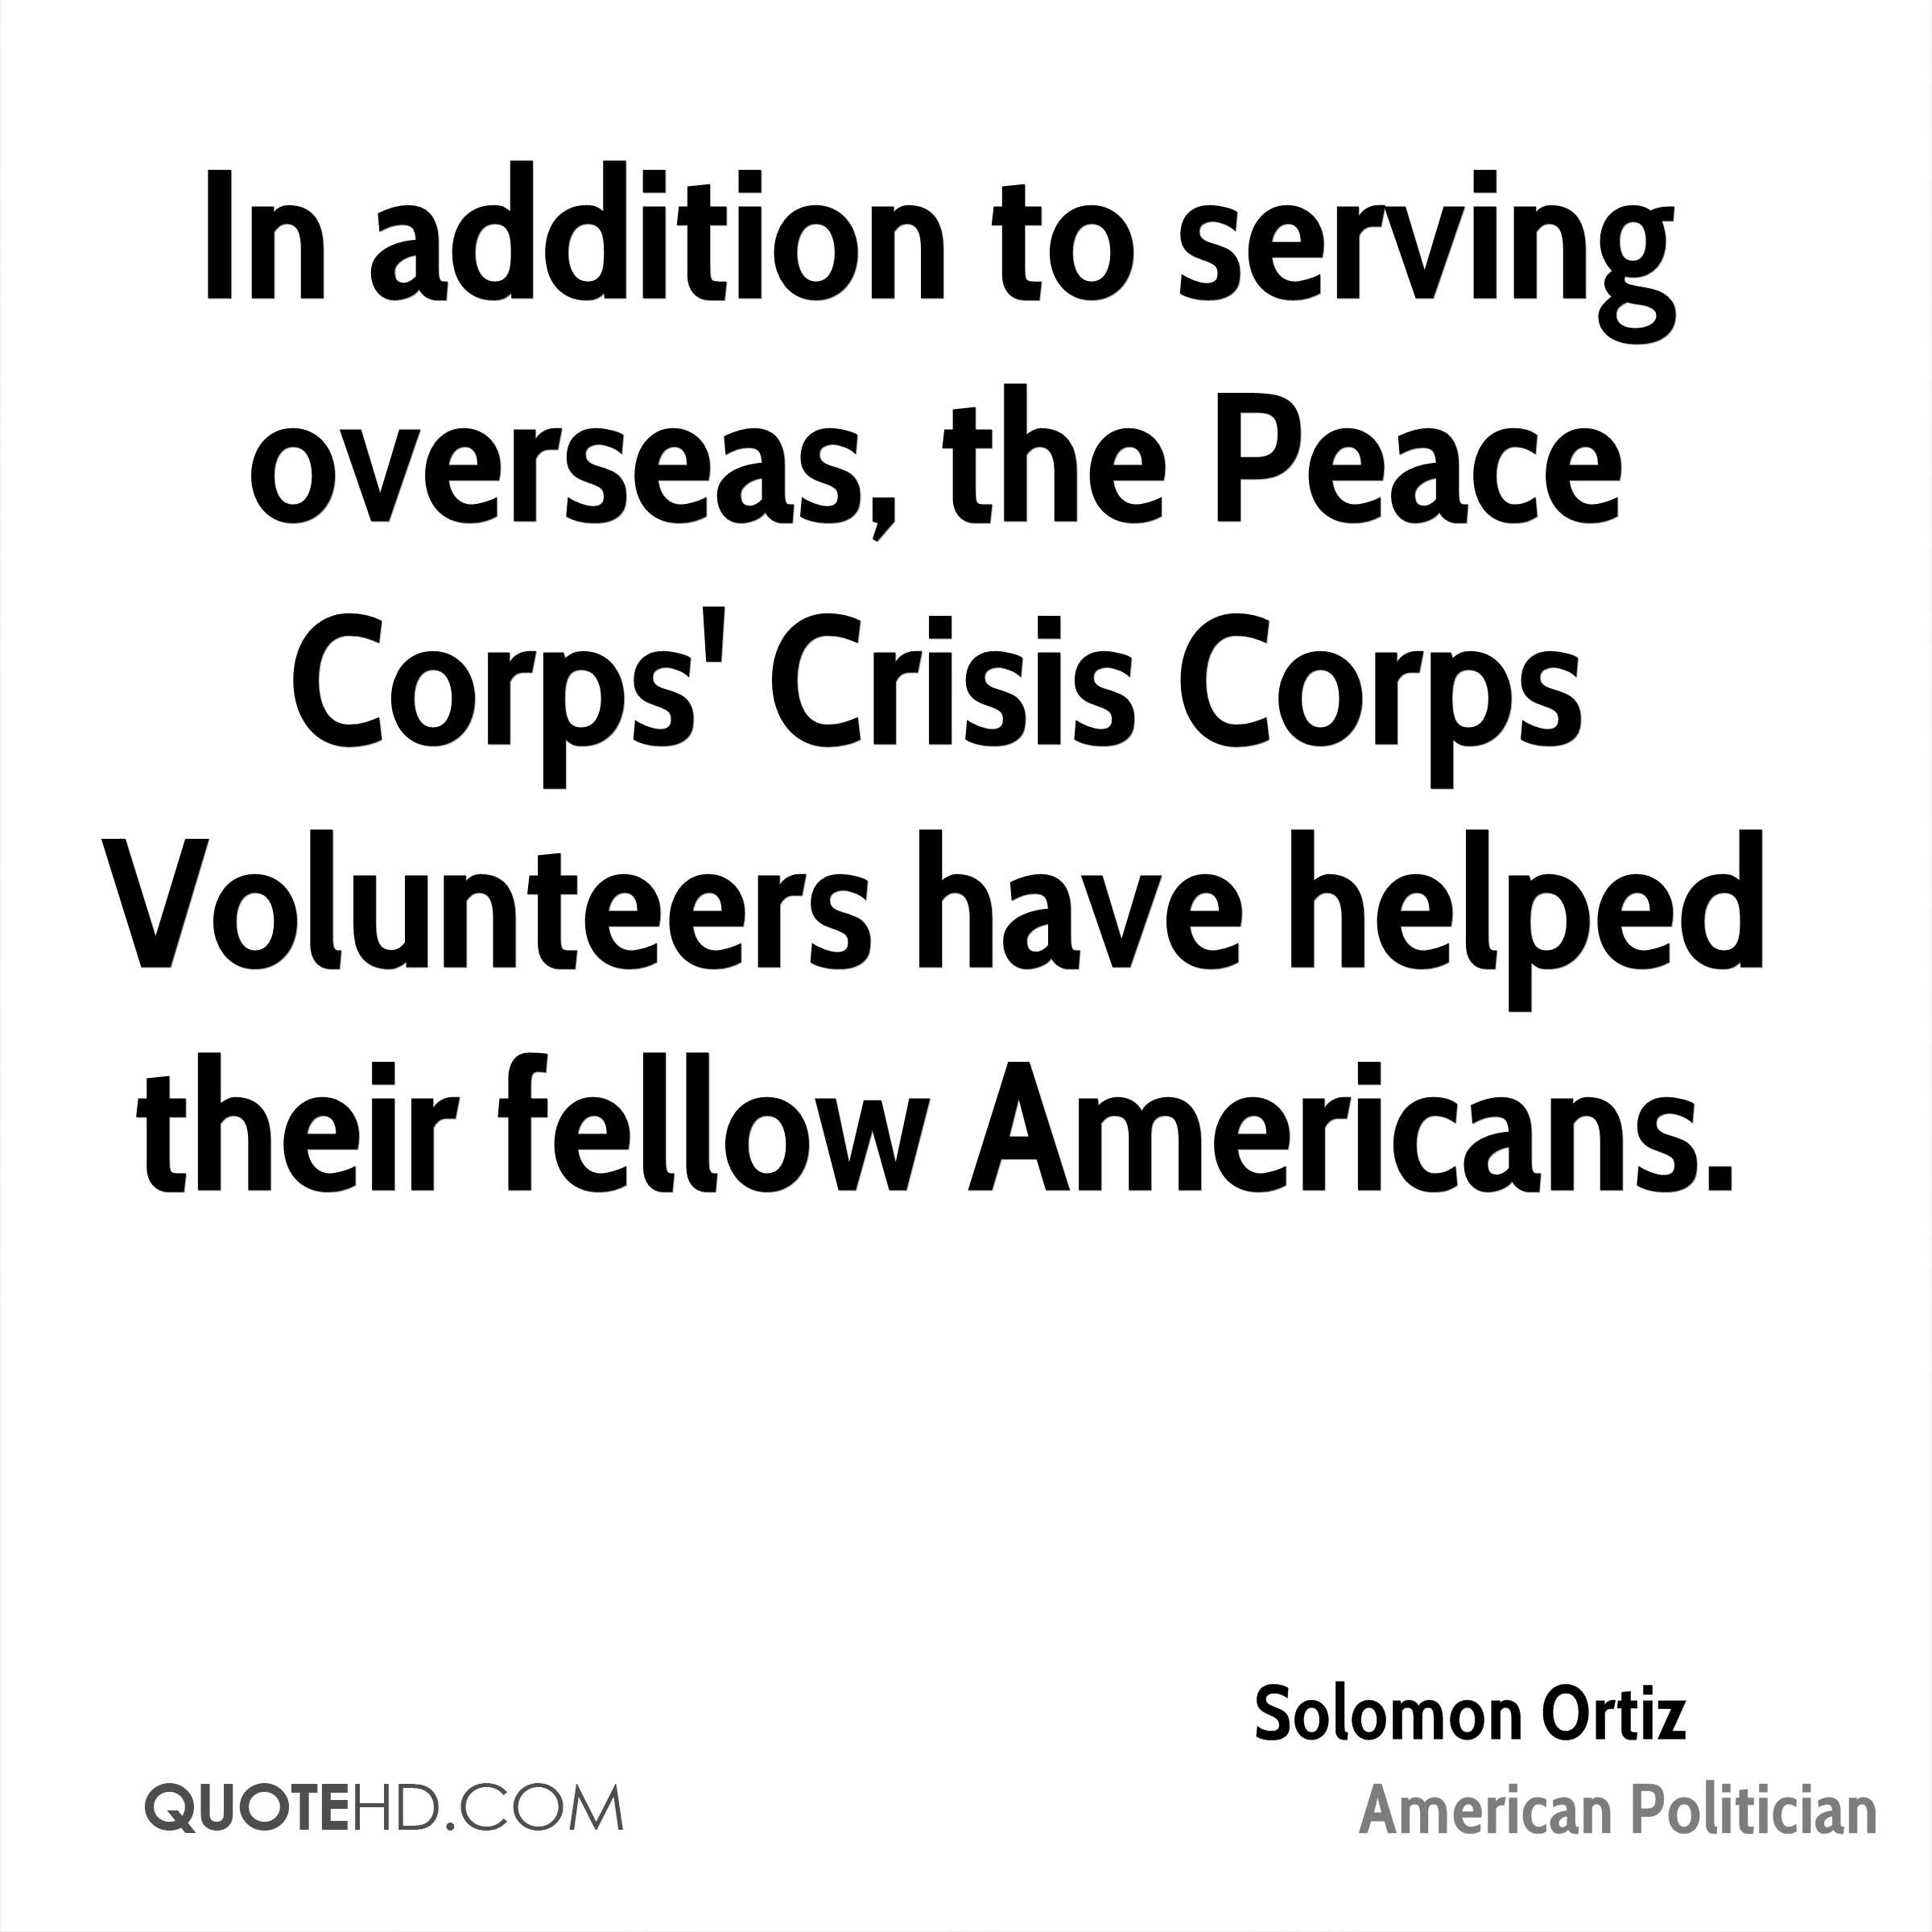 In addition to serving overseas, the Peace Corps' Crisis Corps Volunteers have helped their fellow Americans.